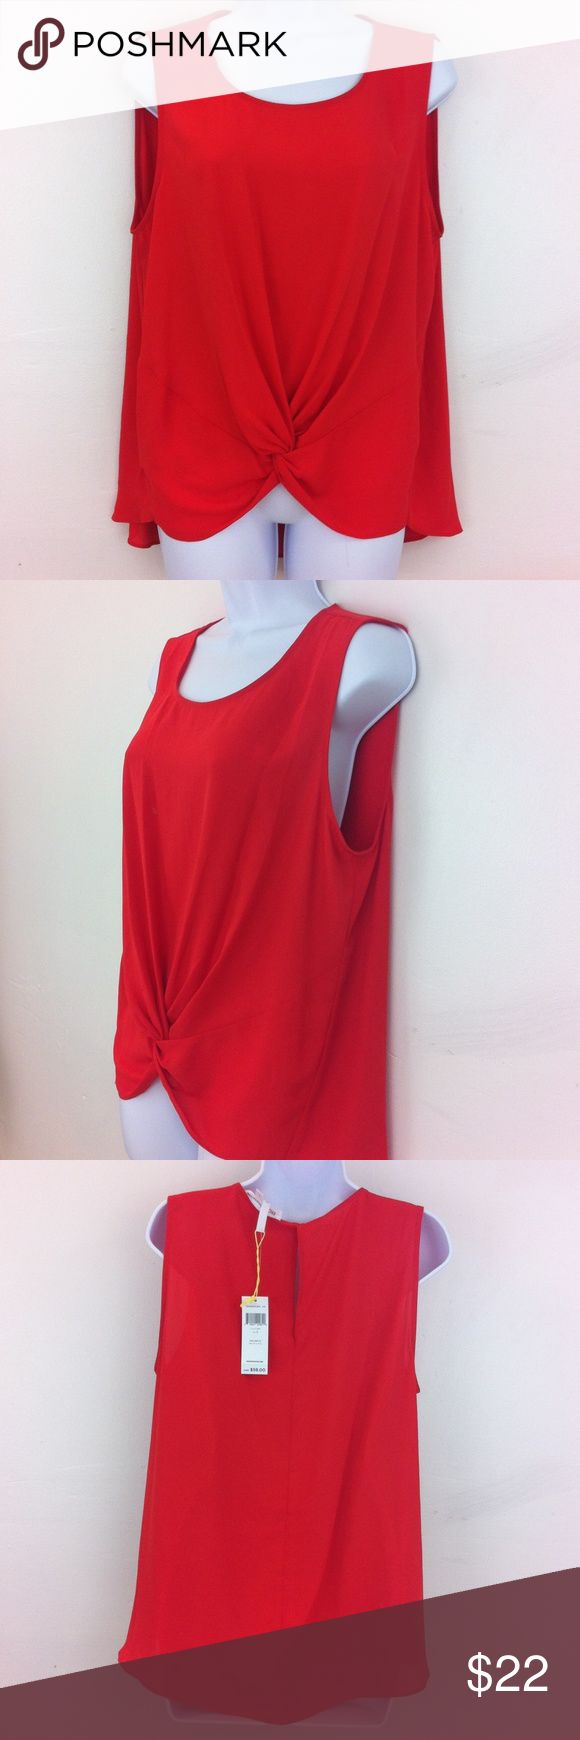 NWT BCBGGeneration top Sleeveless, knotted in front, no flaws NWT, back button. Deep reddish orange. Silky fabric. BCBGeneration Tops